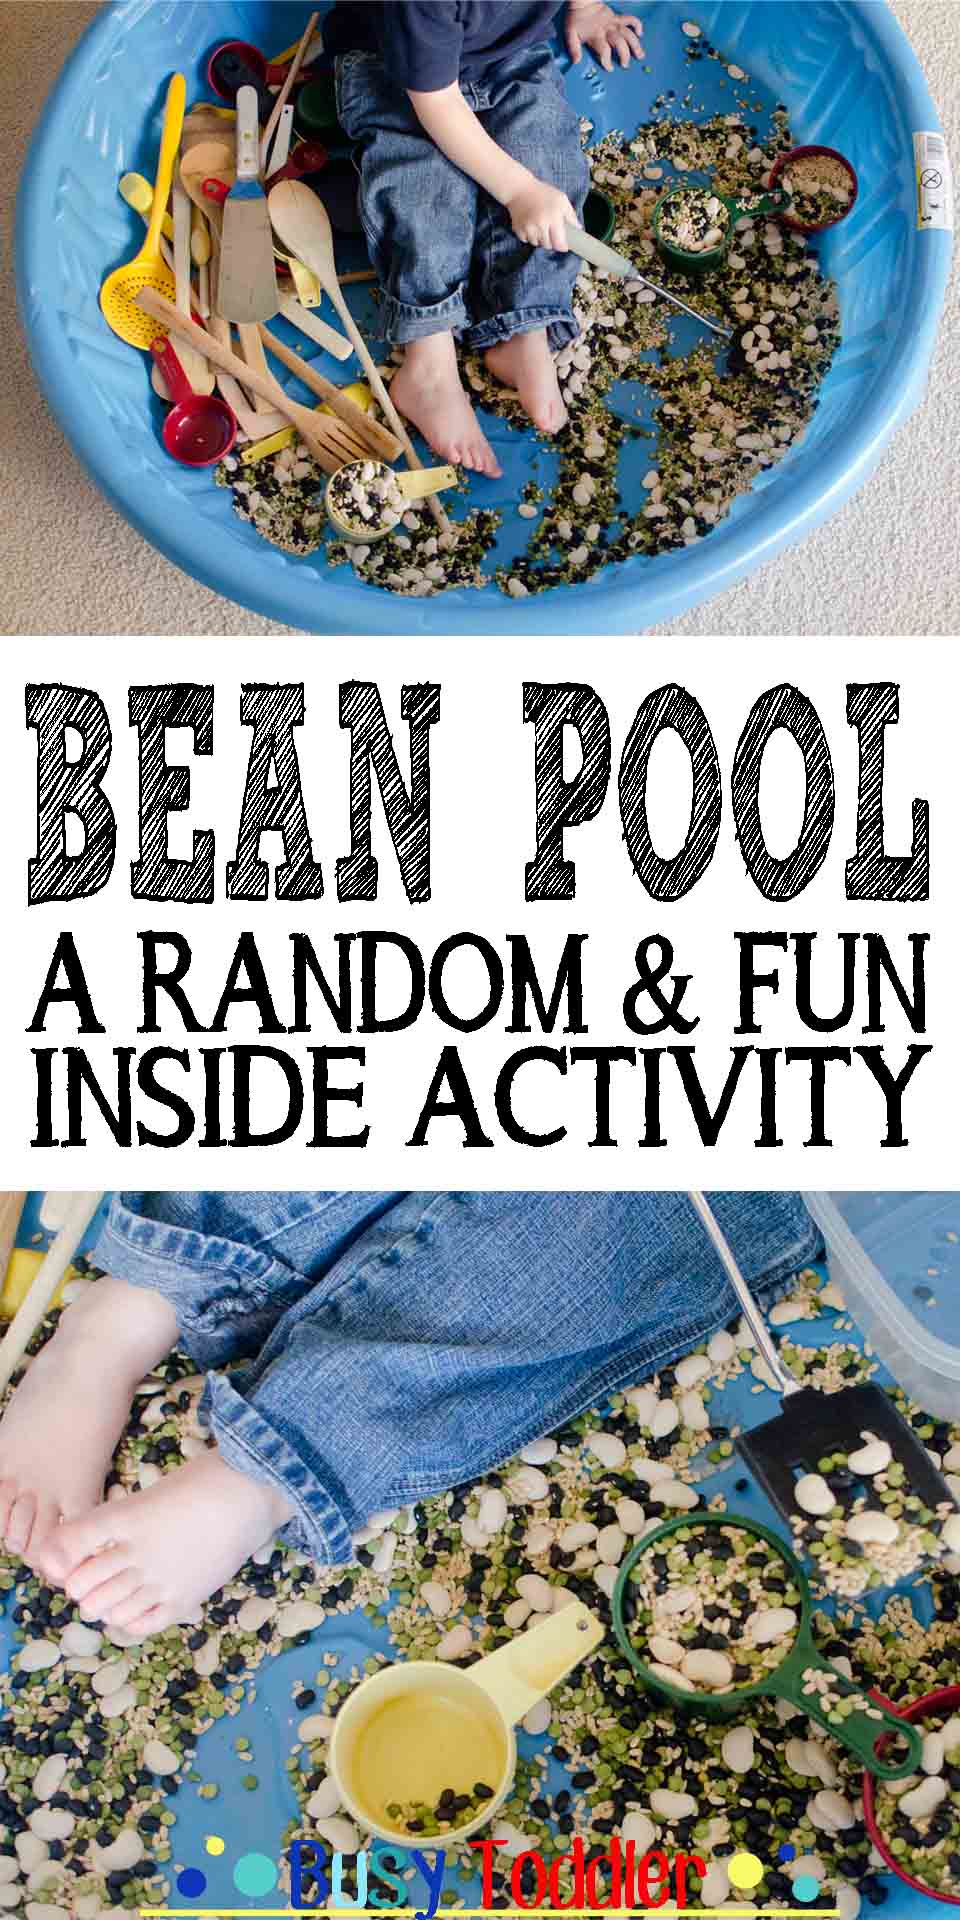 Bean Pool: a random, fun indoor activity